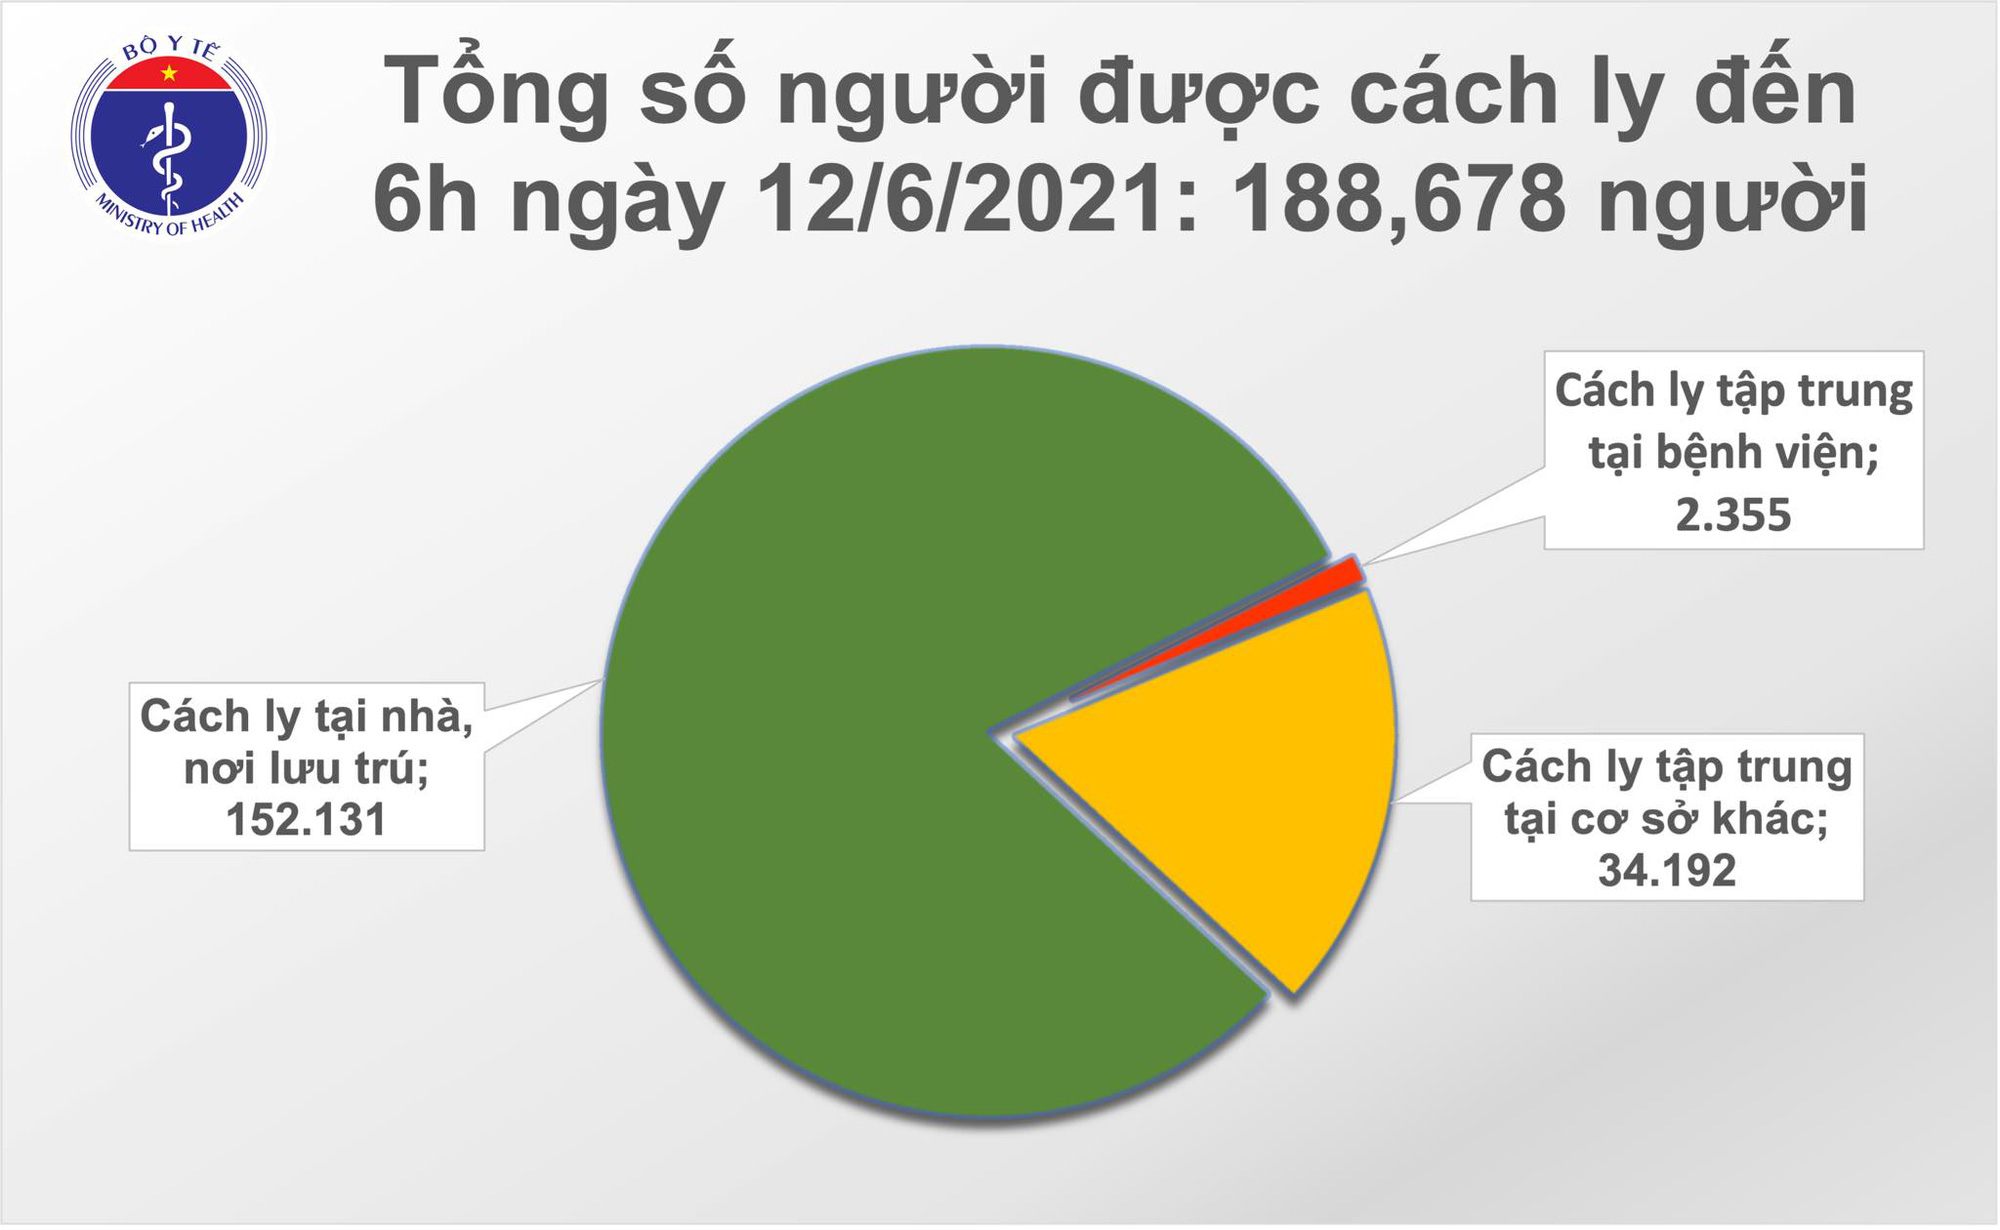 On the morning of June 12, recording 68 more cases, Vietnam had more than 10,000 cases of Covid-19 - Photo 2.